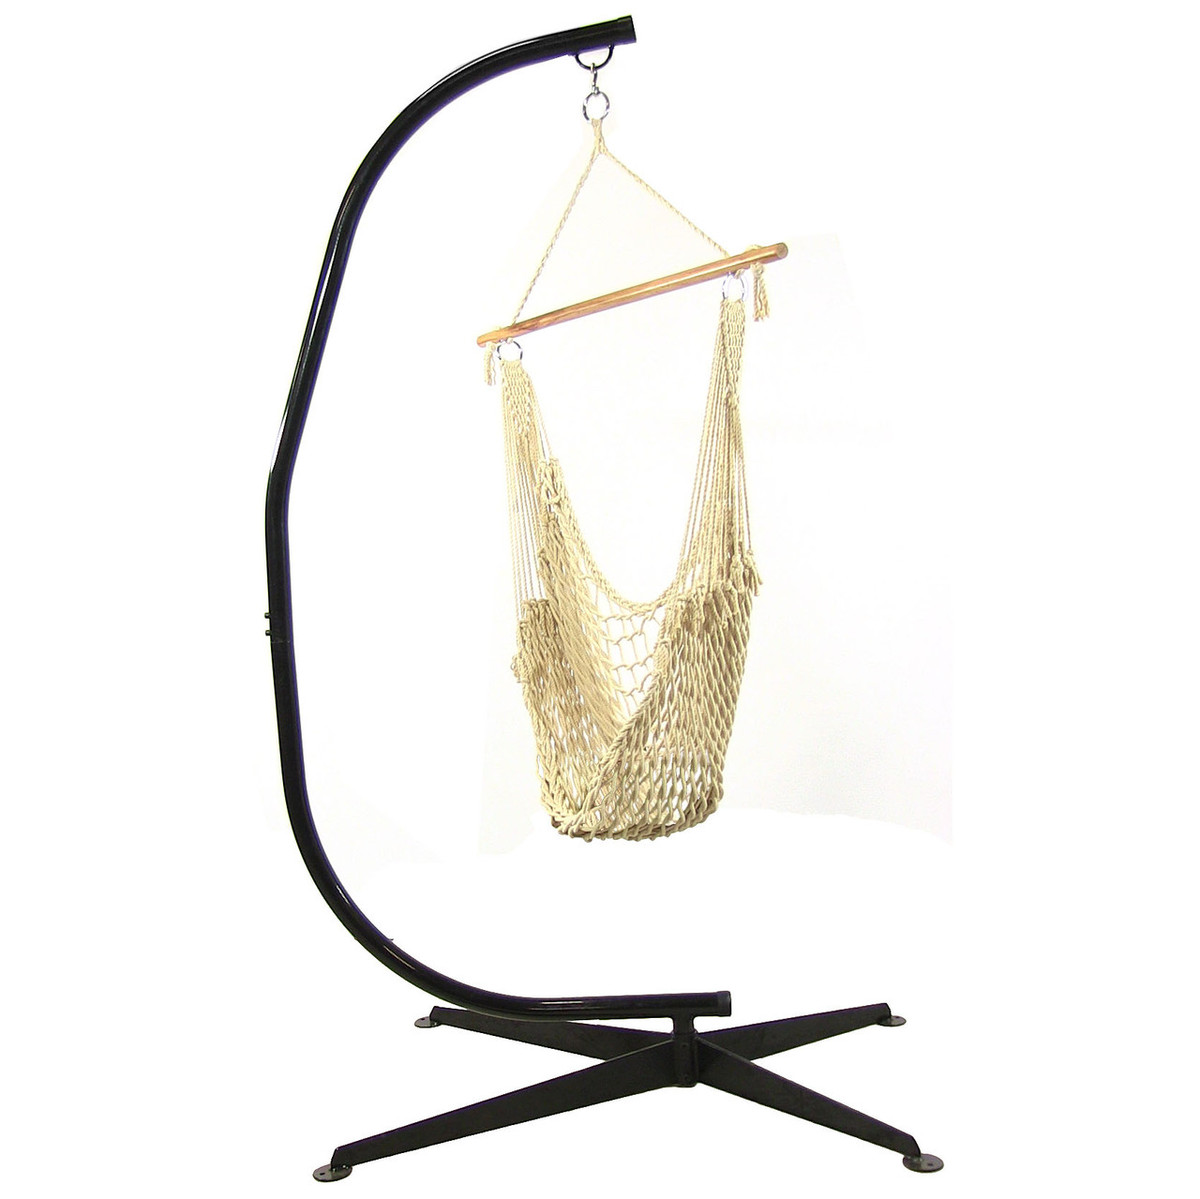 hammock chair c stand diy glider rocking cushions sunnydaze cotton rope hanging swing with 48 inch wide seat max weight 300 pounds